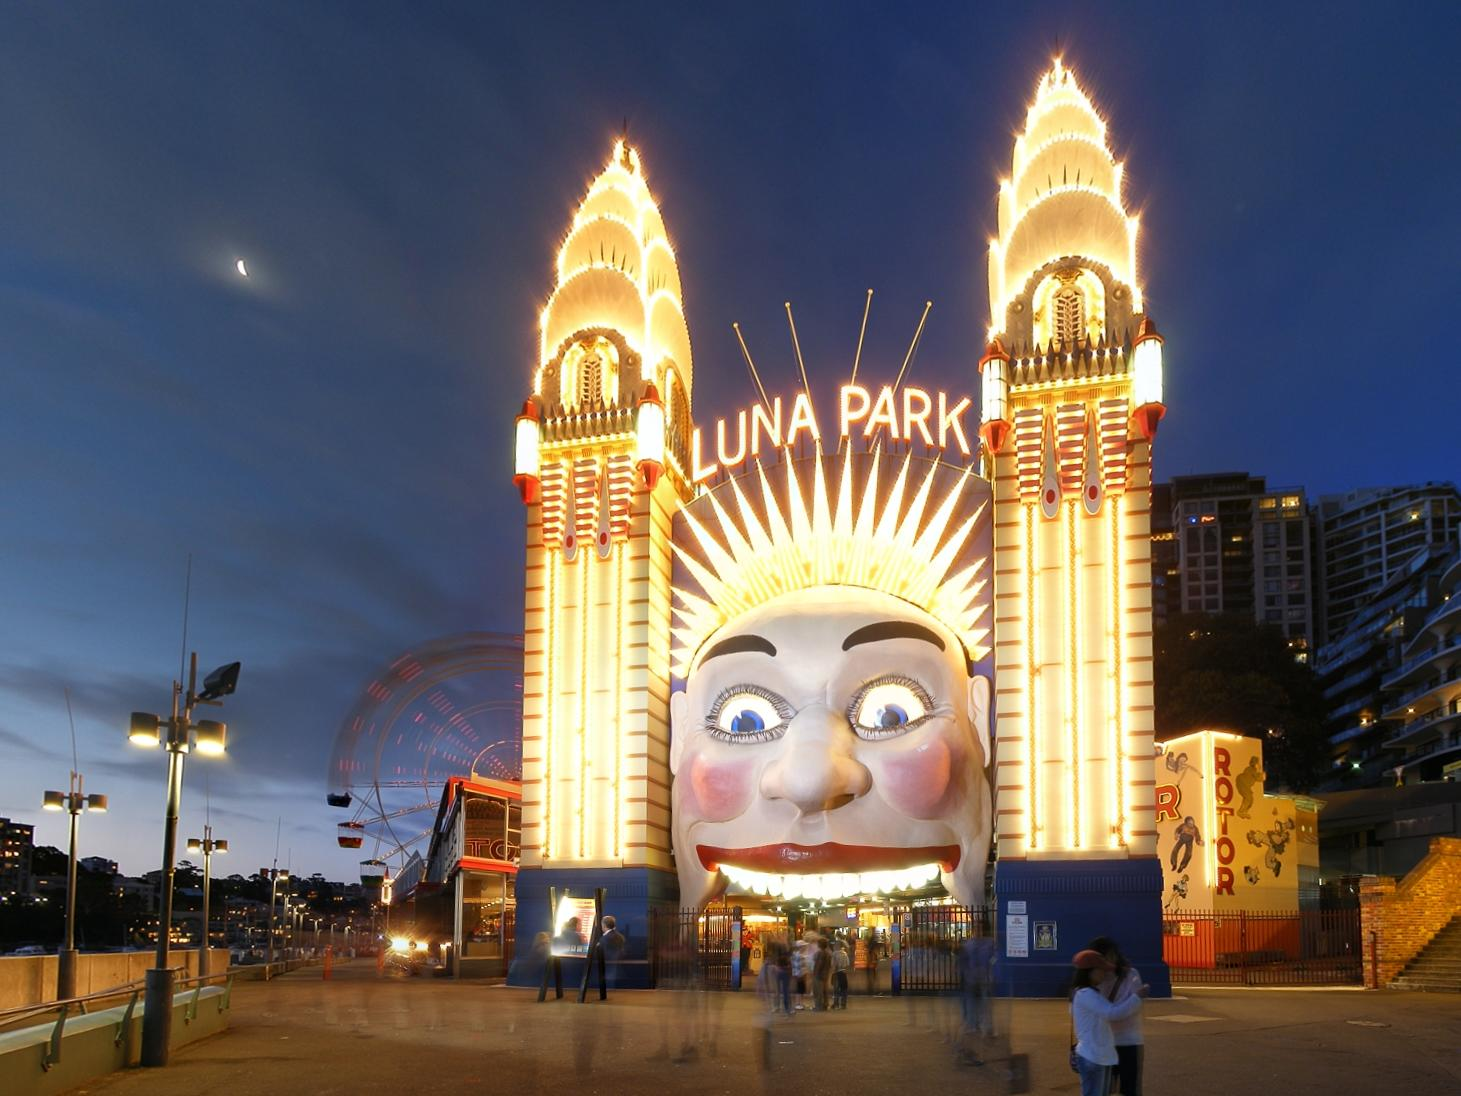 Luna Park next to Silkari Suites at Chatswood